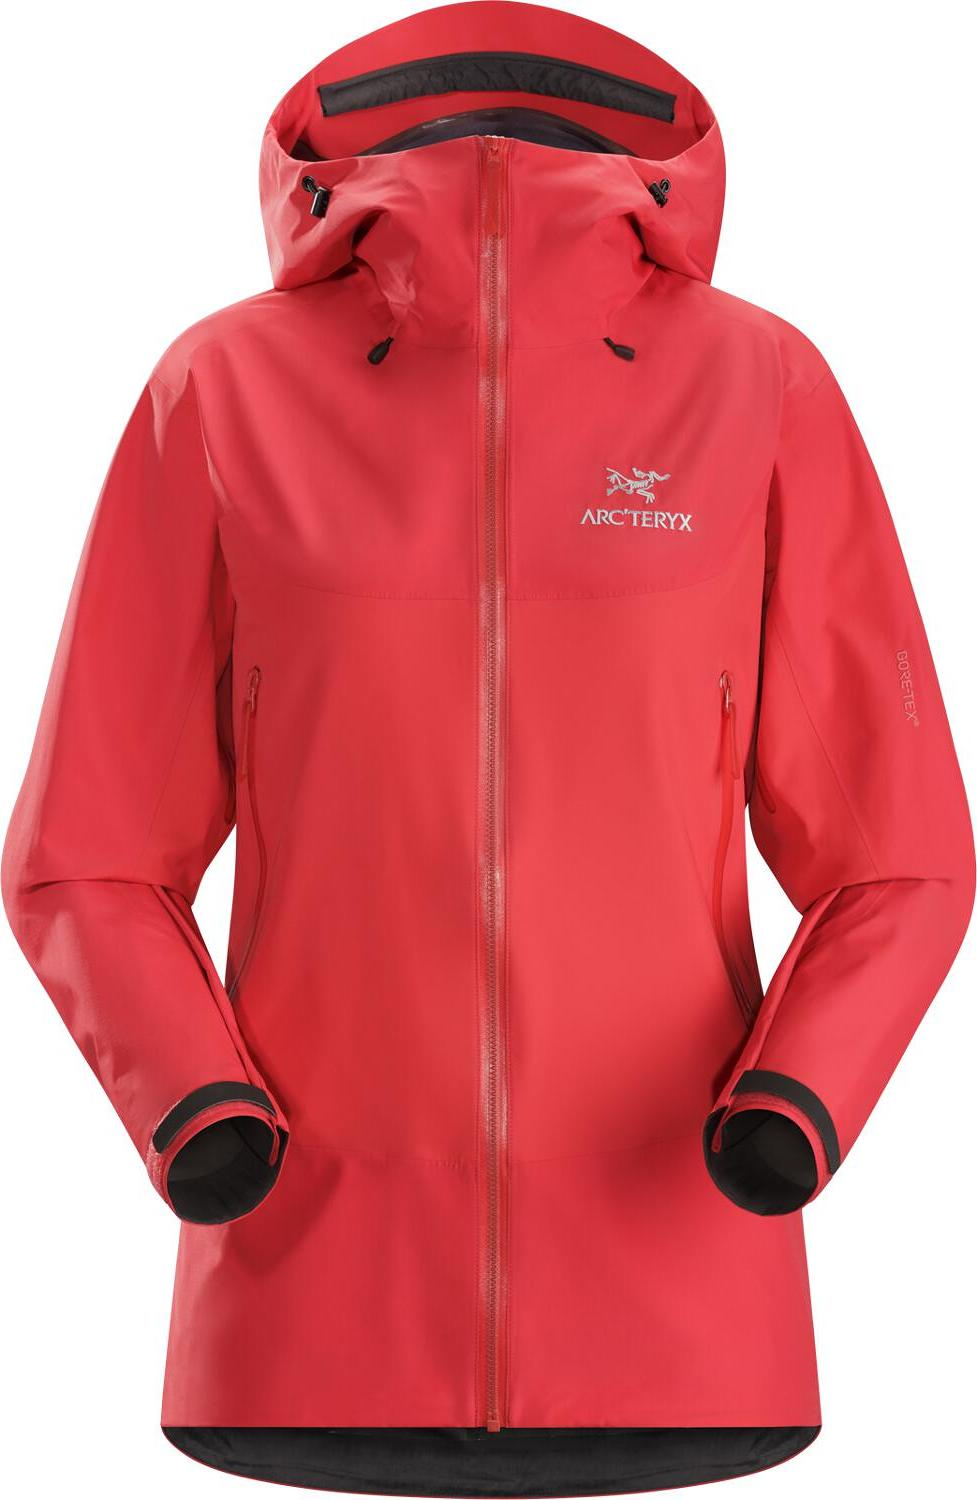 Hybrid The Last Women's Jacket Sl Arc'teryx Beta Hunt wXqYxznpE4